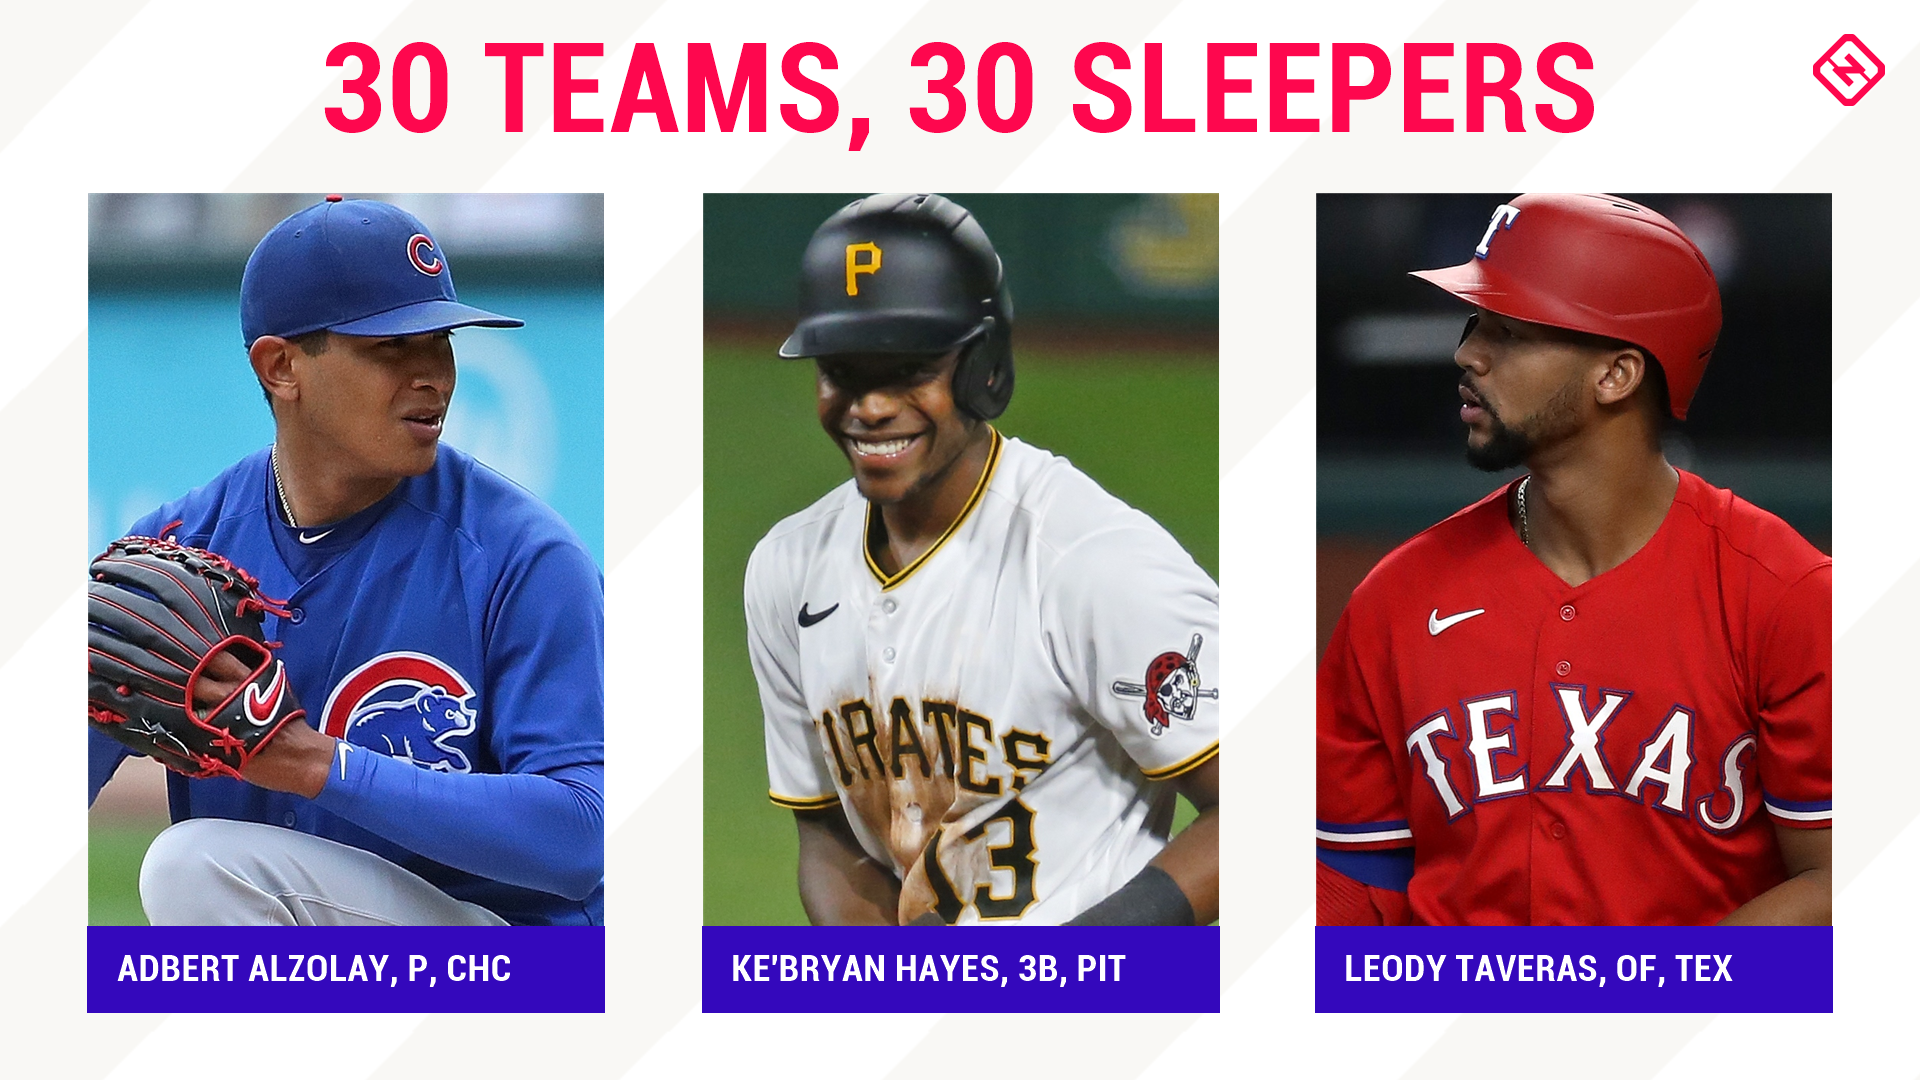 2021 Fantasy Baseball Sleepers: One potential breakout player from every team